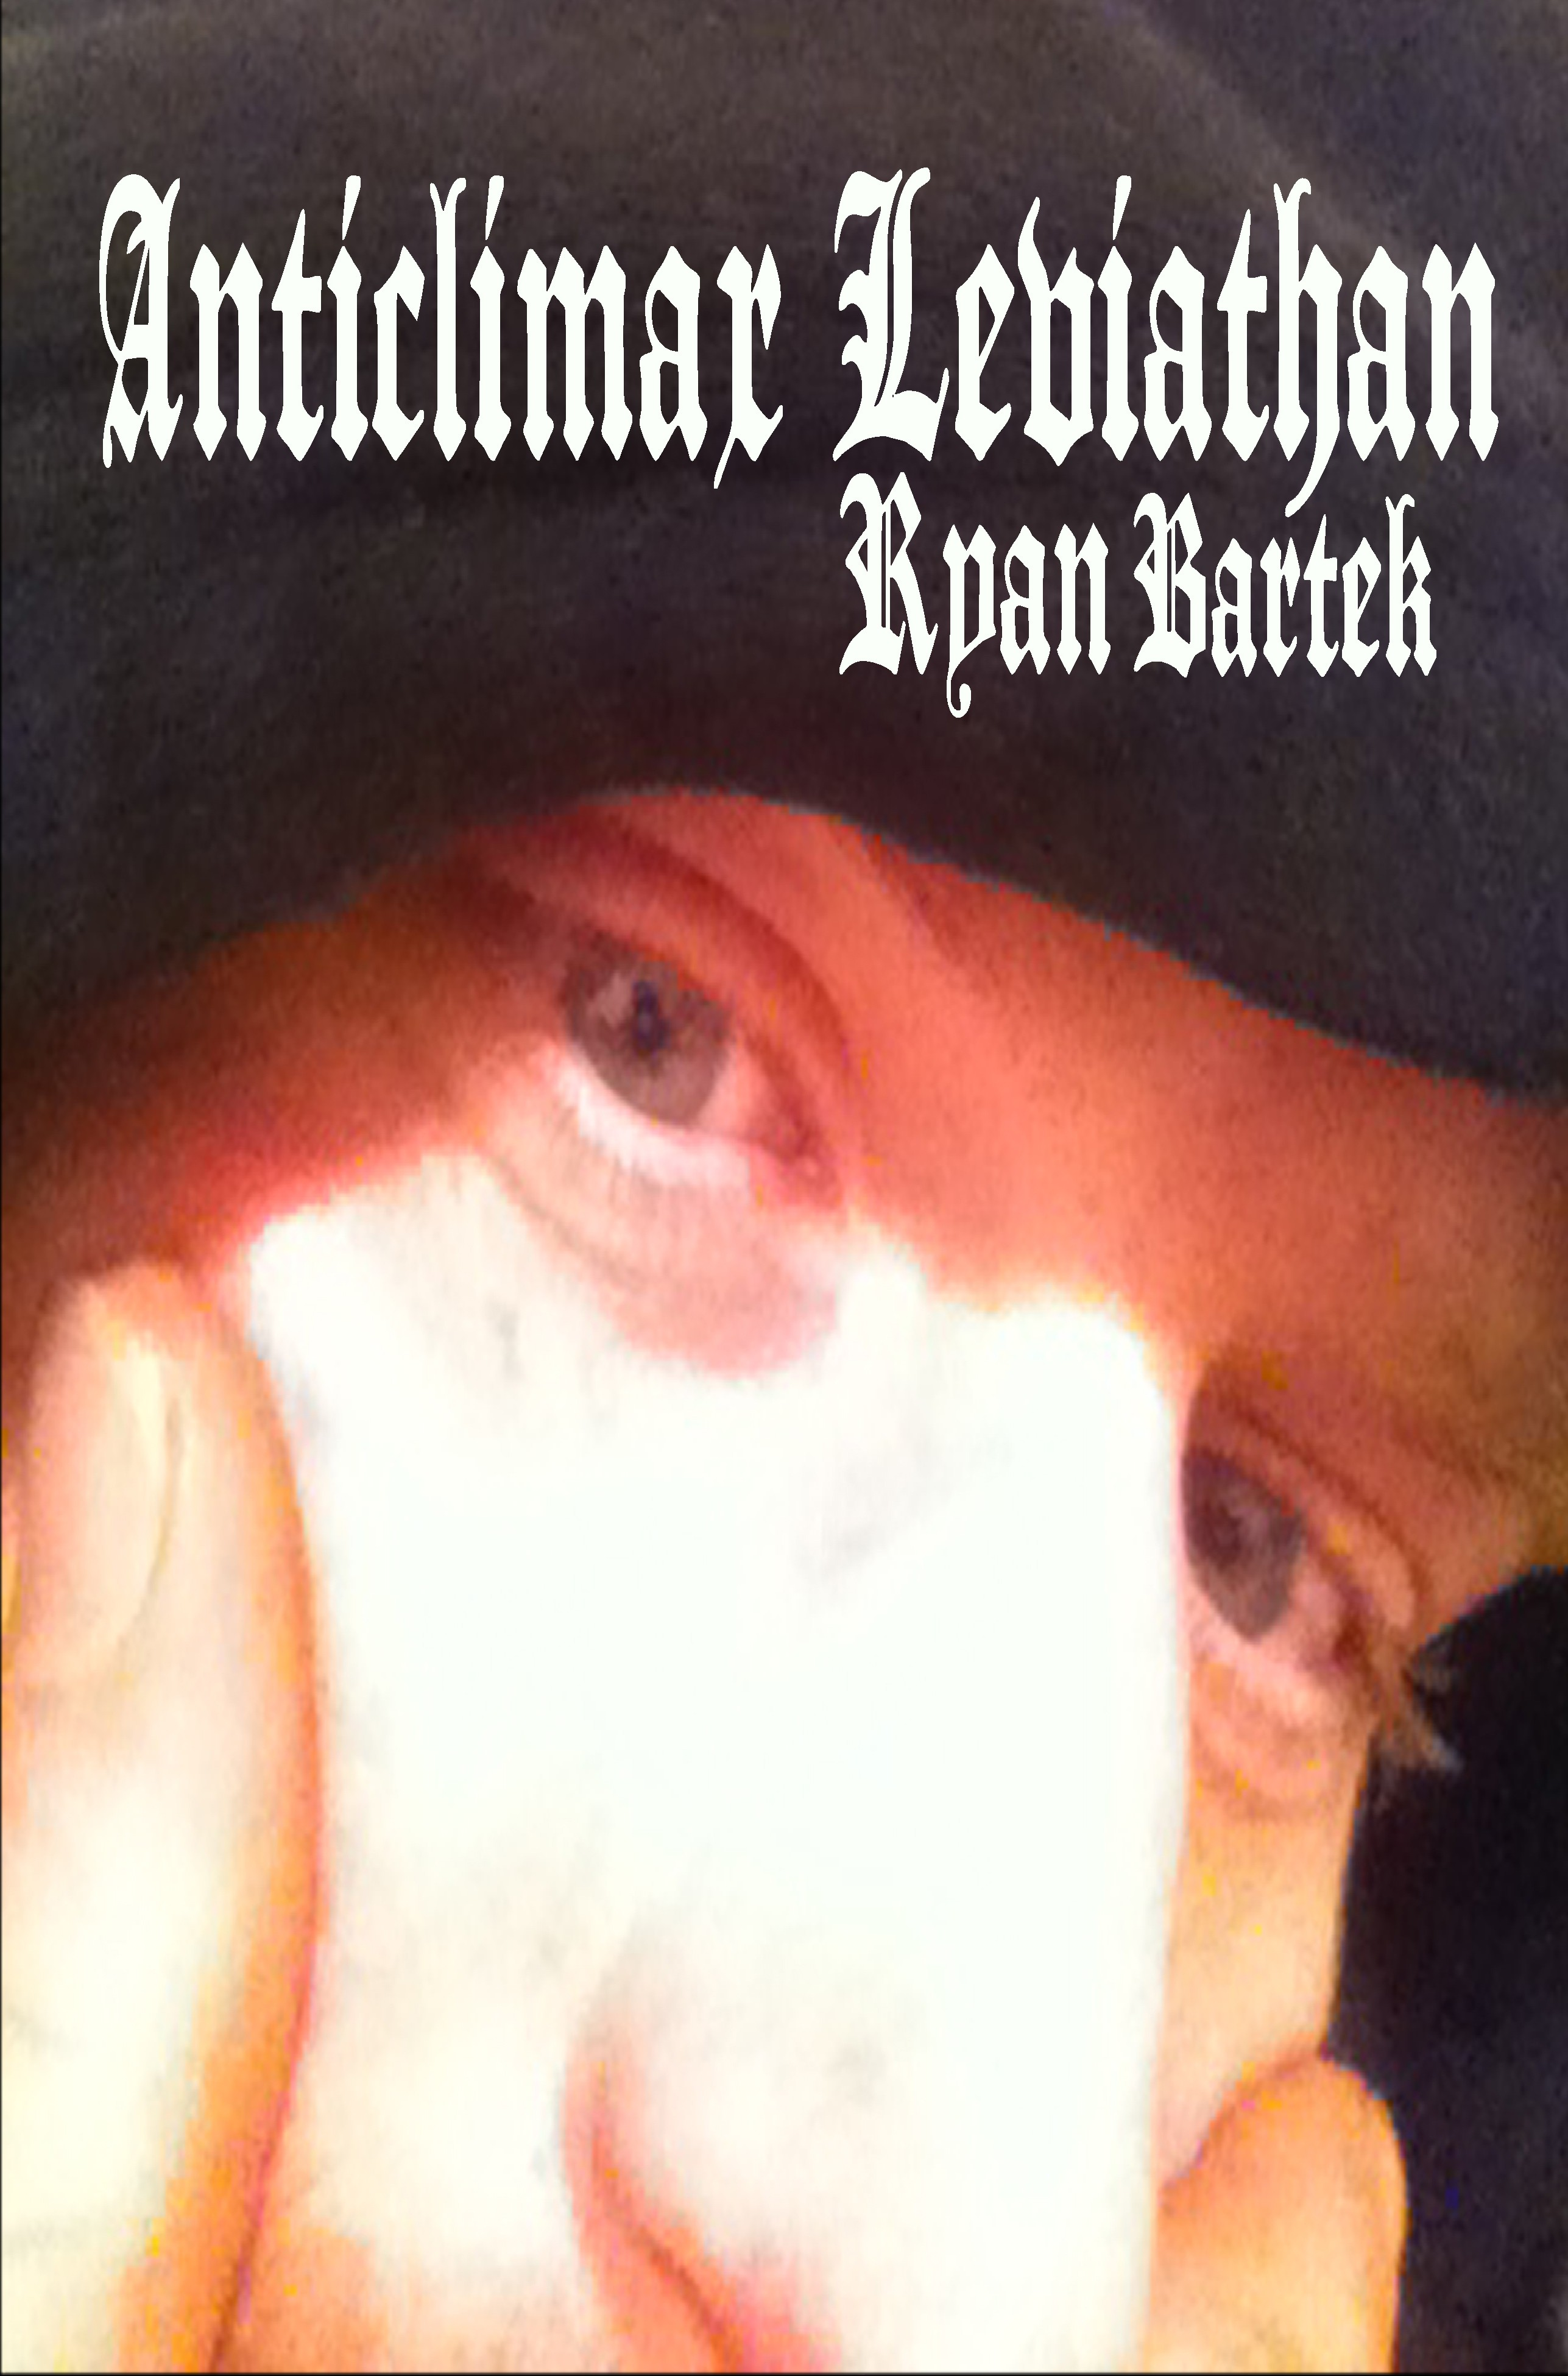 Anticlimax Leviathan Chapter One Two Out 11 15 16 1 Joe Funk Electric Electrician Frisco Tx Book By Ryanbartek